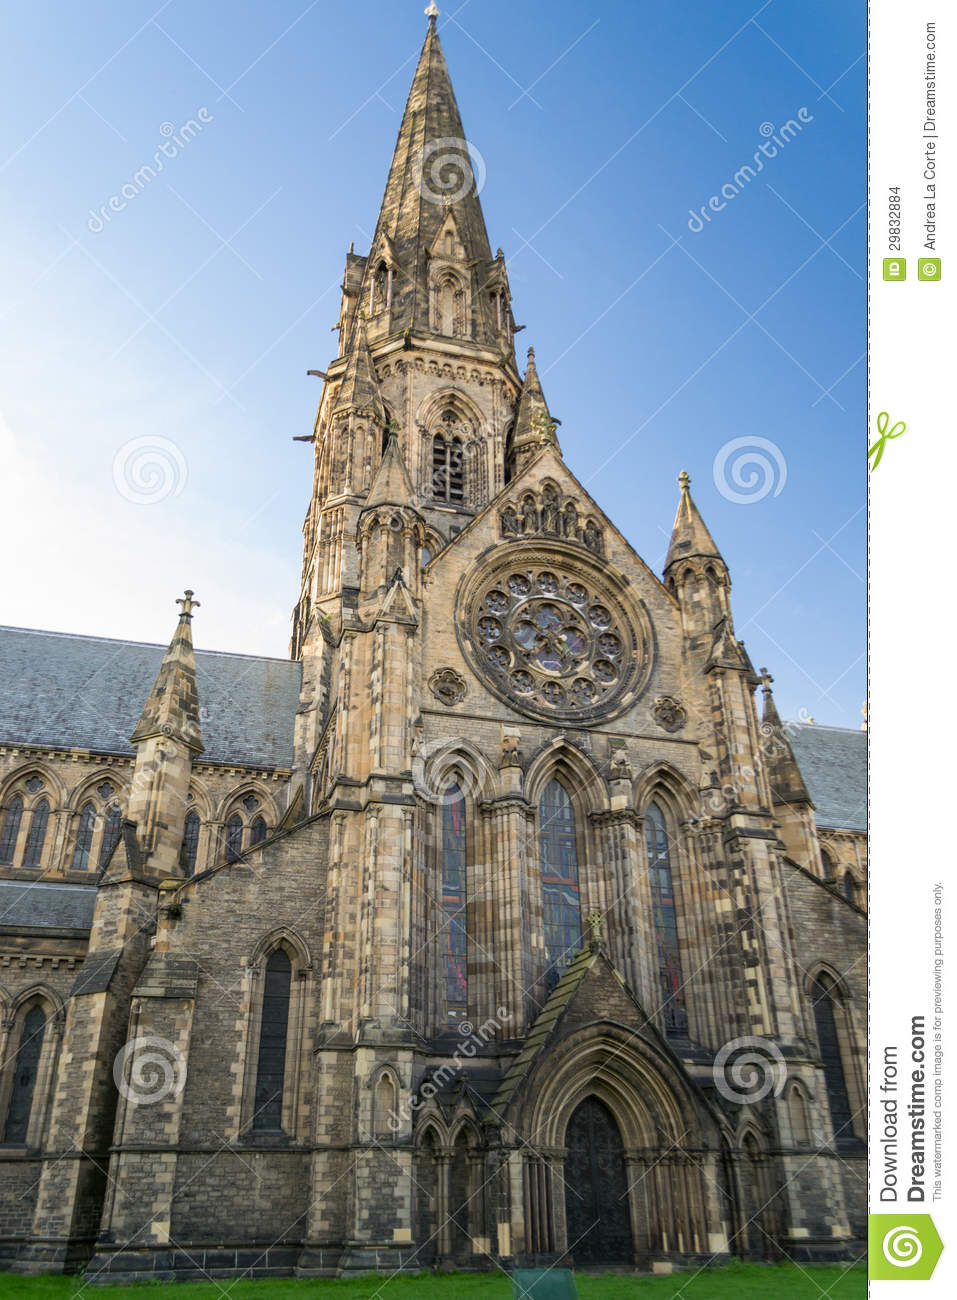 A catedral de St Mary